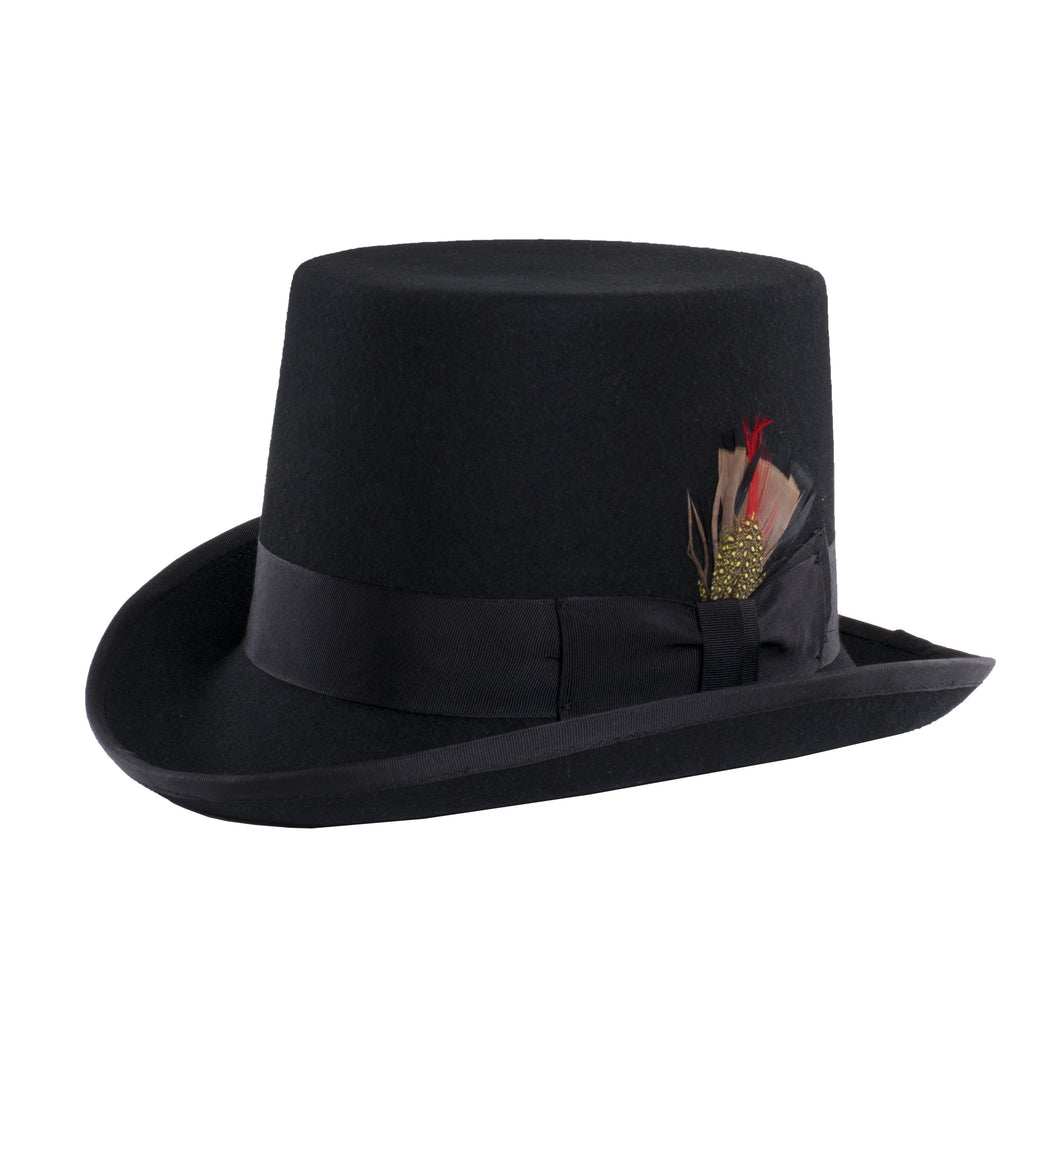 Ferrecci Black Short Pilgrim Top Hat 100% Wool Fully Lined inside, Black - Ferrecci USA